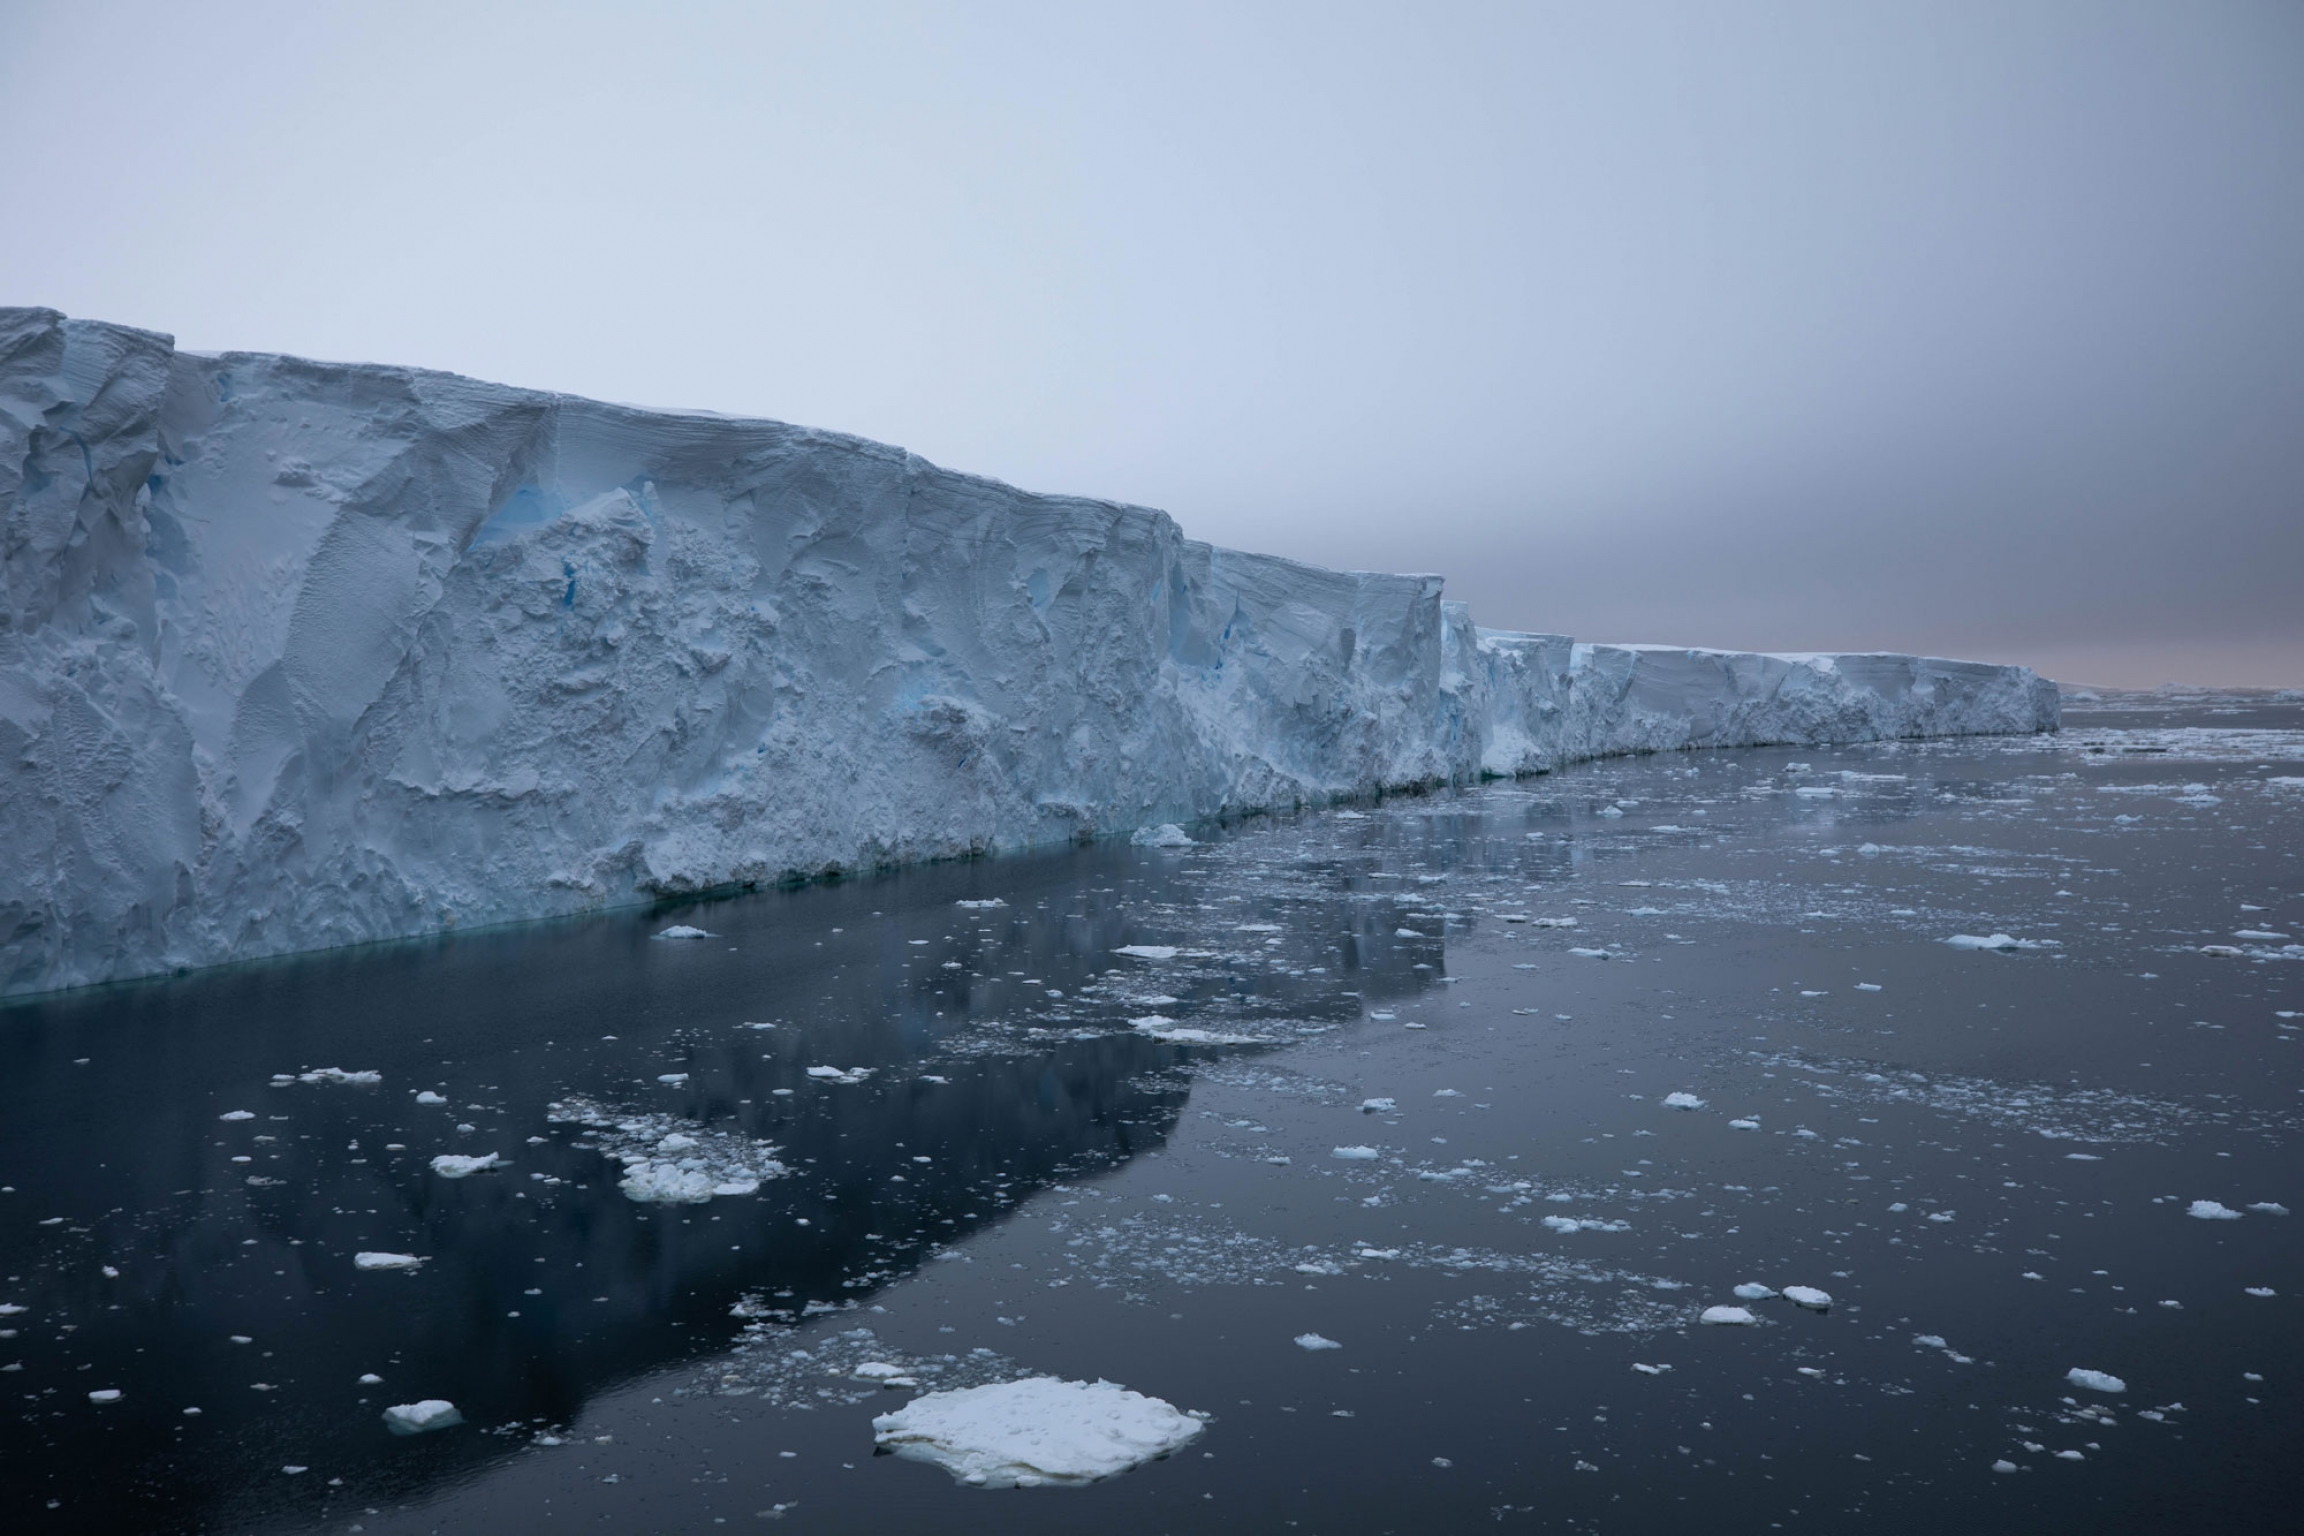 Layers of snow are shown along the edge of Thwaites Glacier